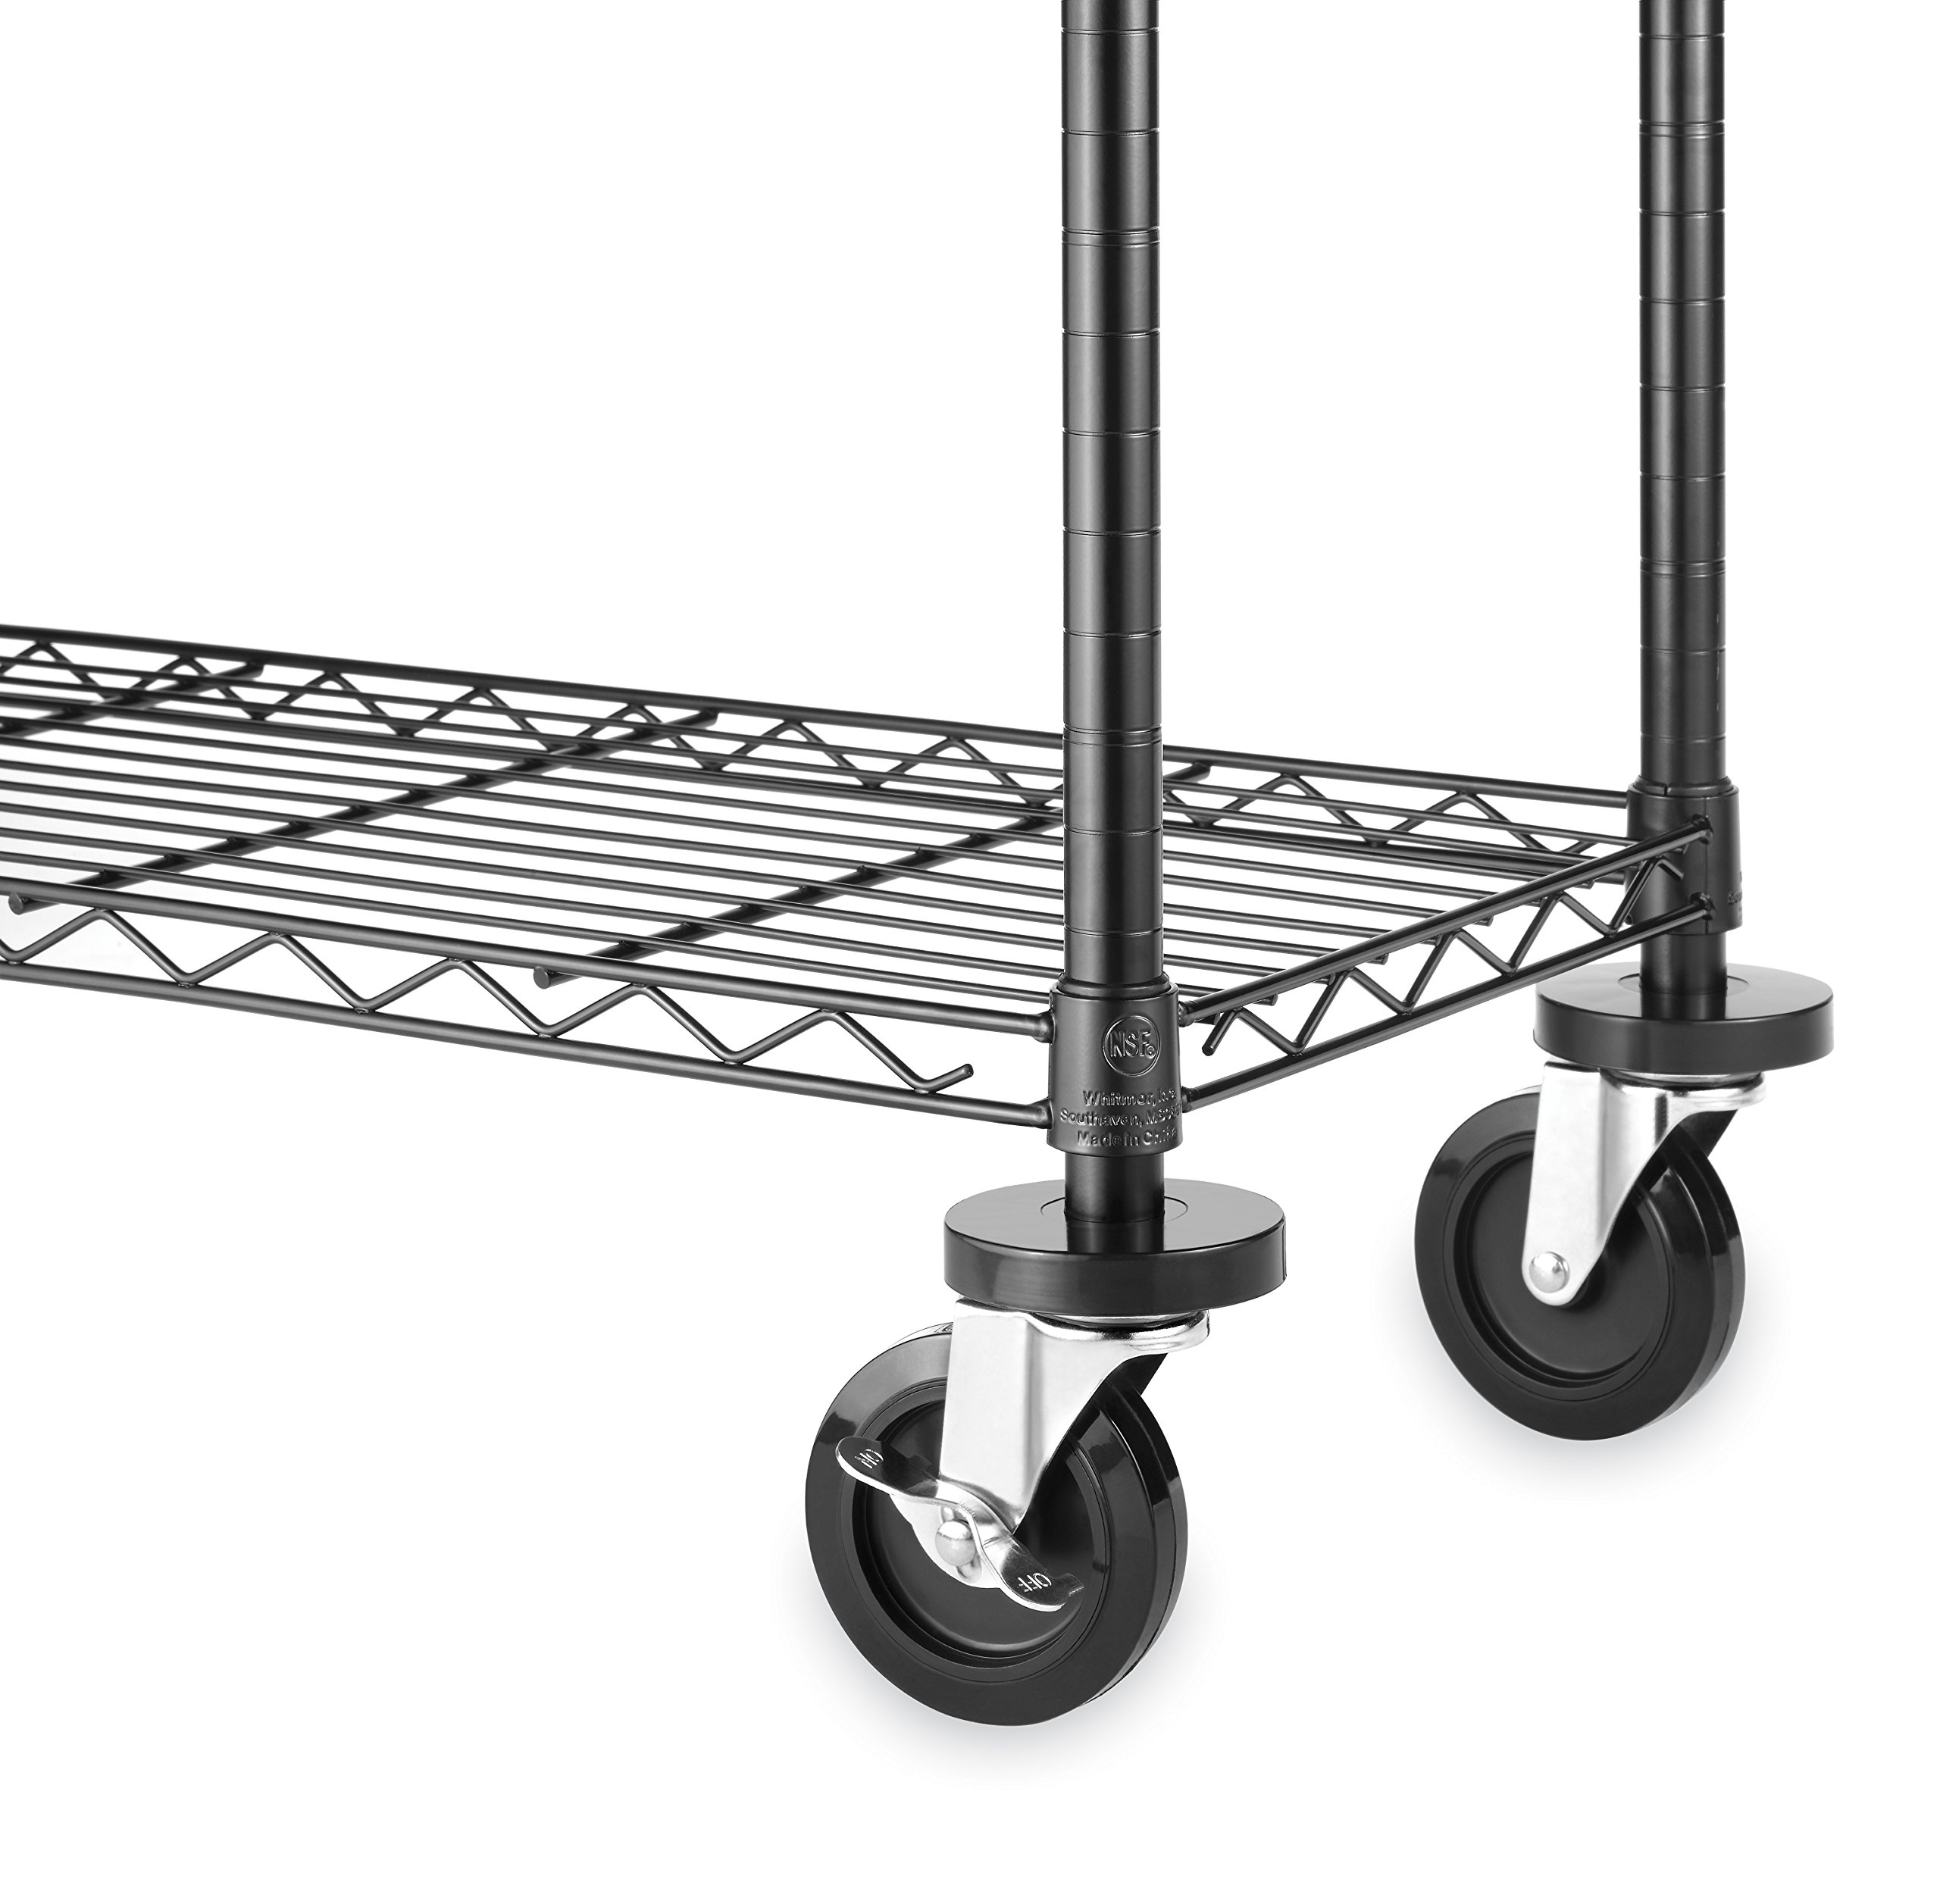 Whitmor Wheels Supreme Shelving Units - Heavy Duty Supports Up to 500 Pounds (Set of 4)